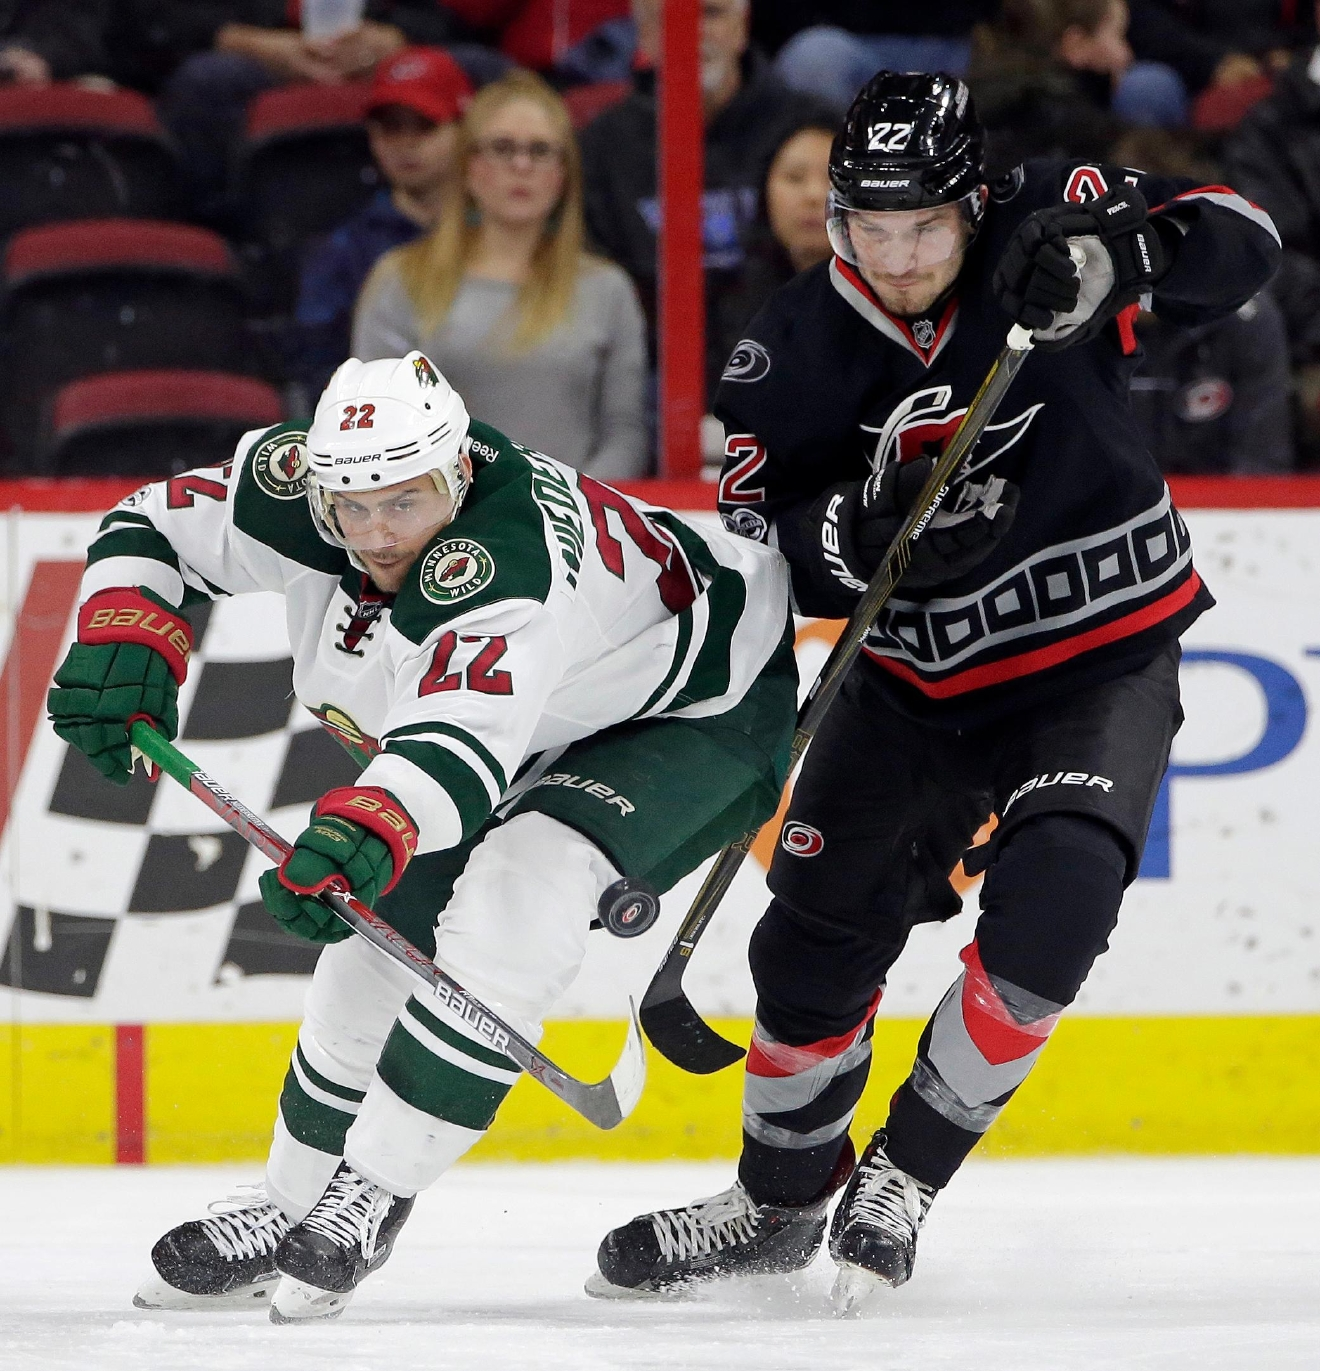 Carolina Hurricanes' Brett Pesce (22), right, and Minnesota Wild's Nino Niederreiter (22), of Switzerland, chase the puck during the second period of an NHL hockey game in Raleigh, N.C., Thursday, March 16, 2017. (AP Photo/Gerry Broome)